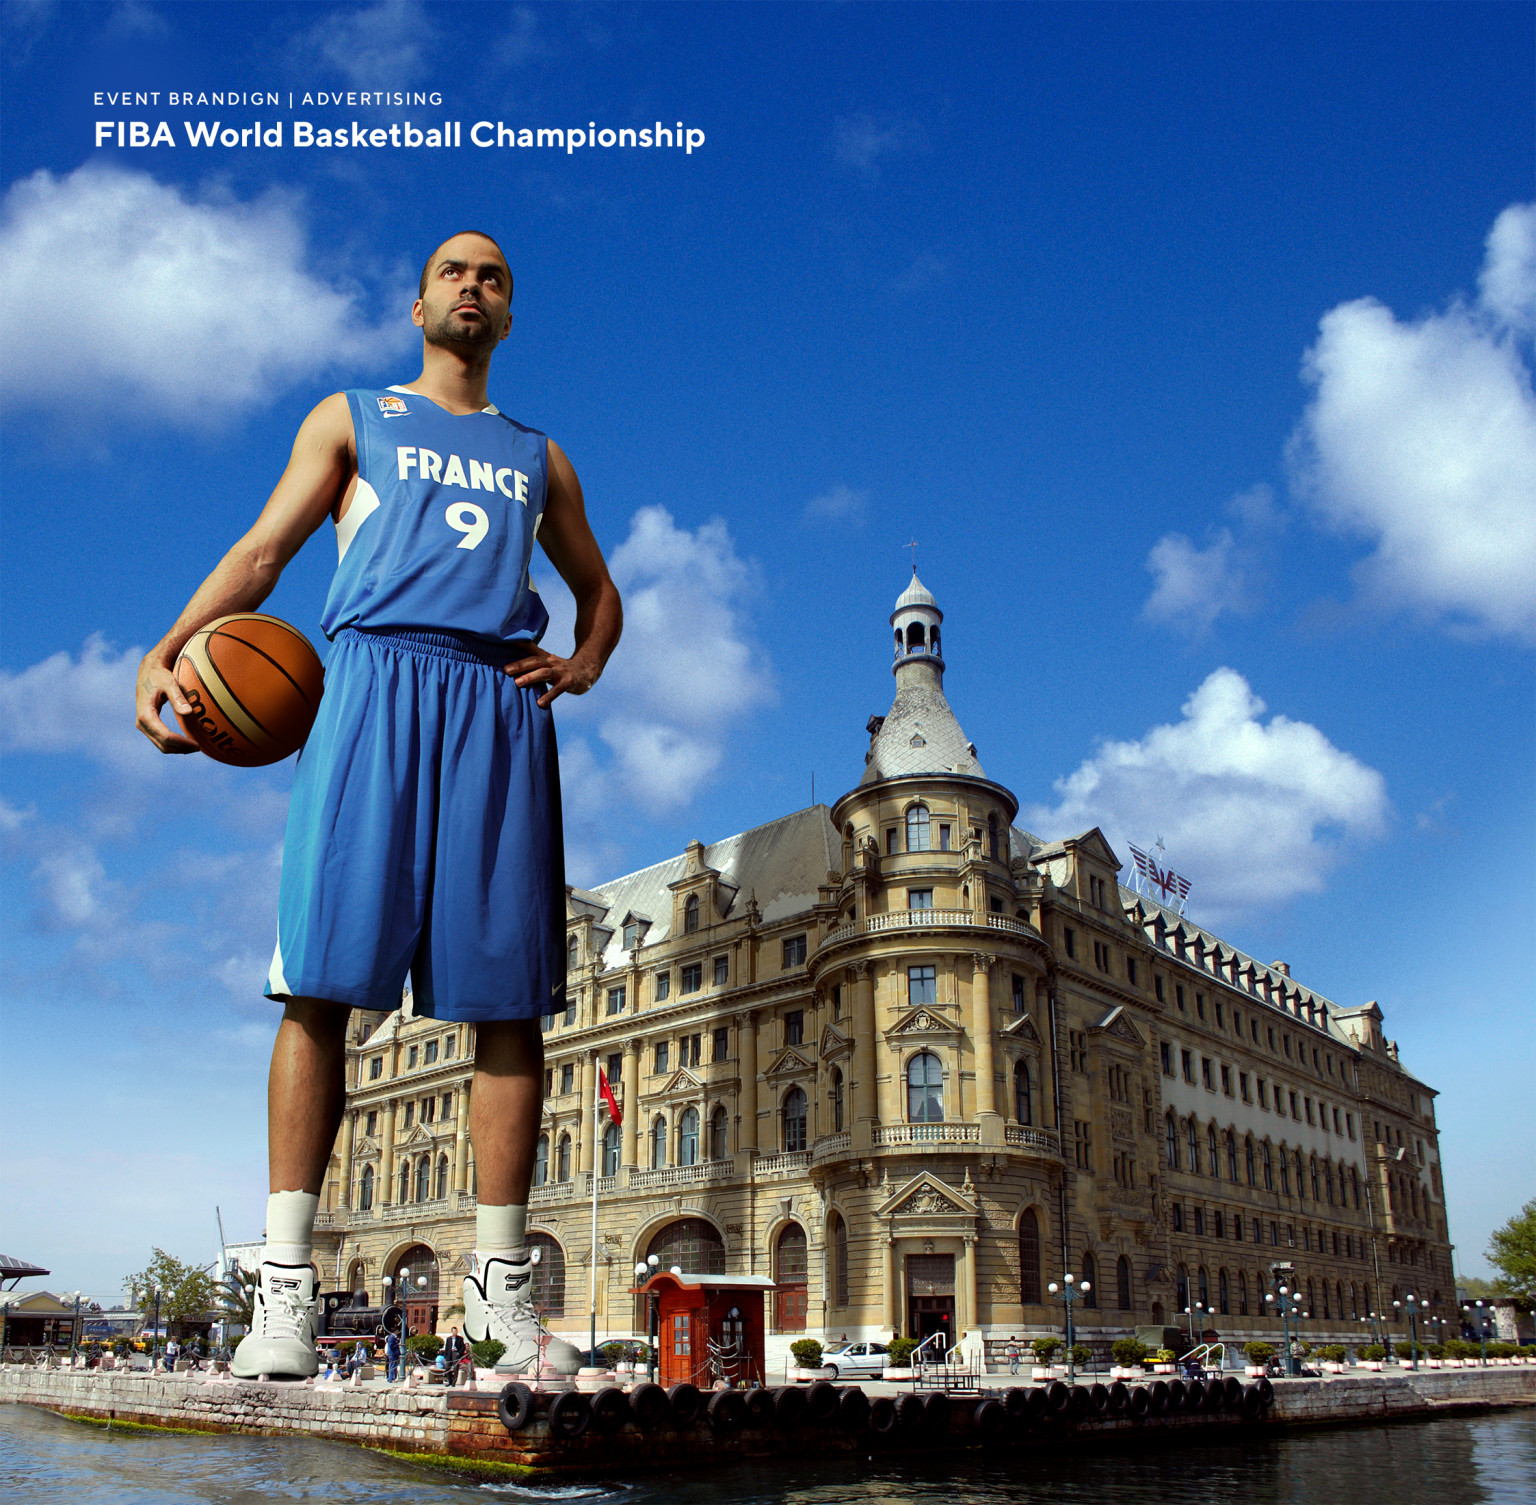 FIBA World Basketball Championship 2010